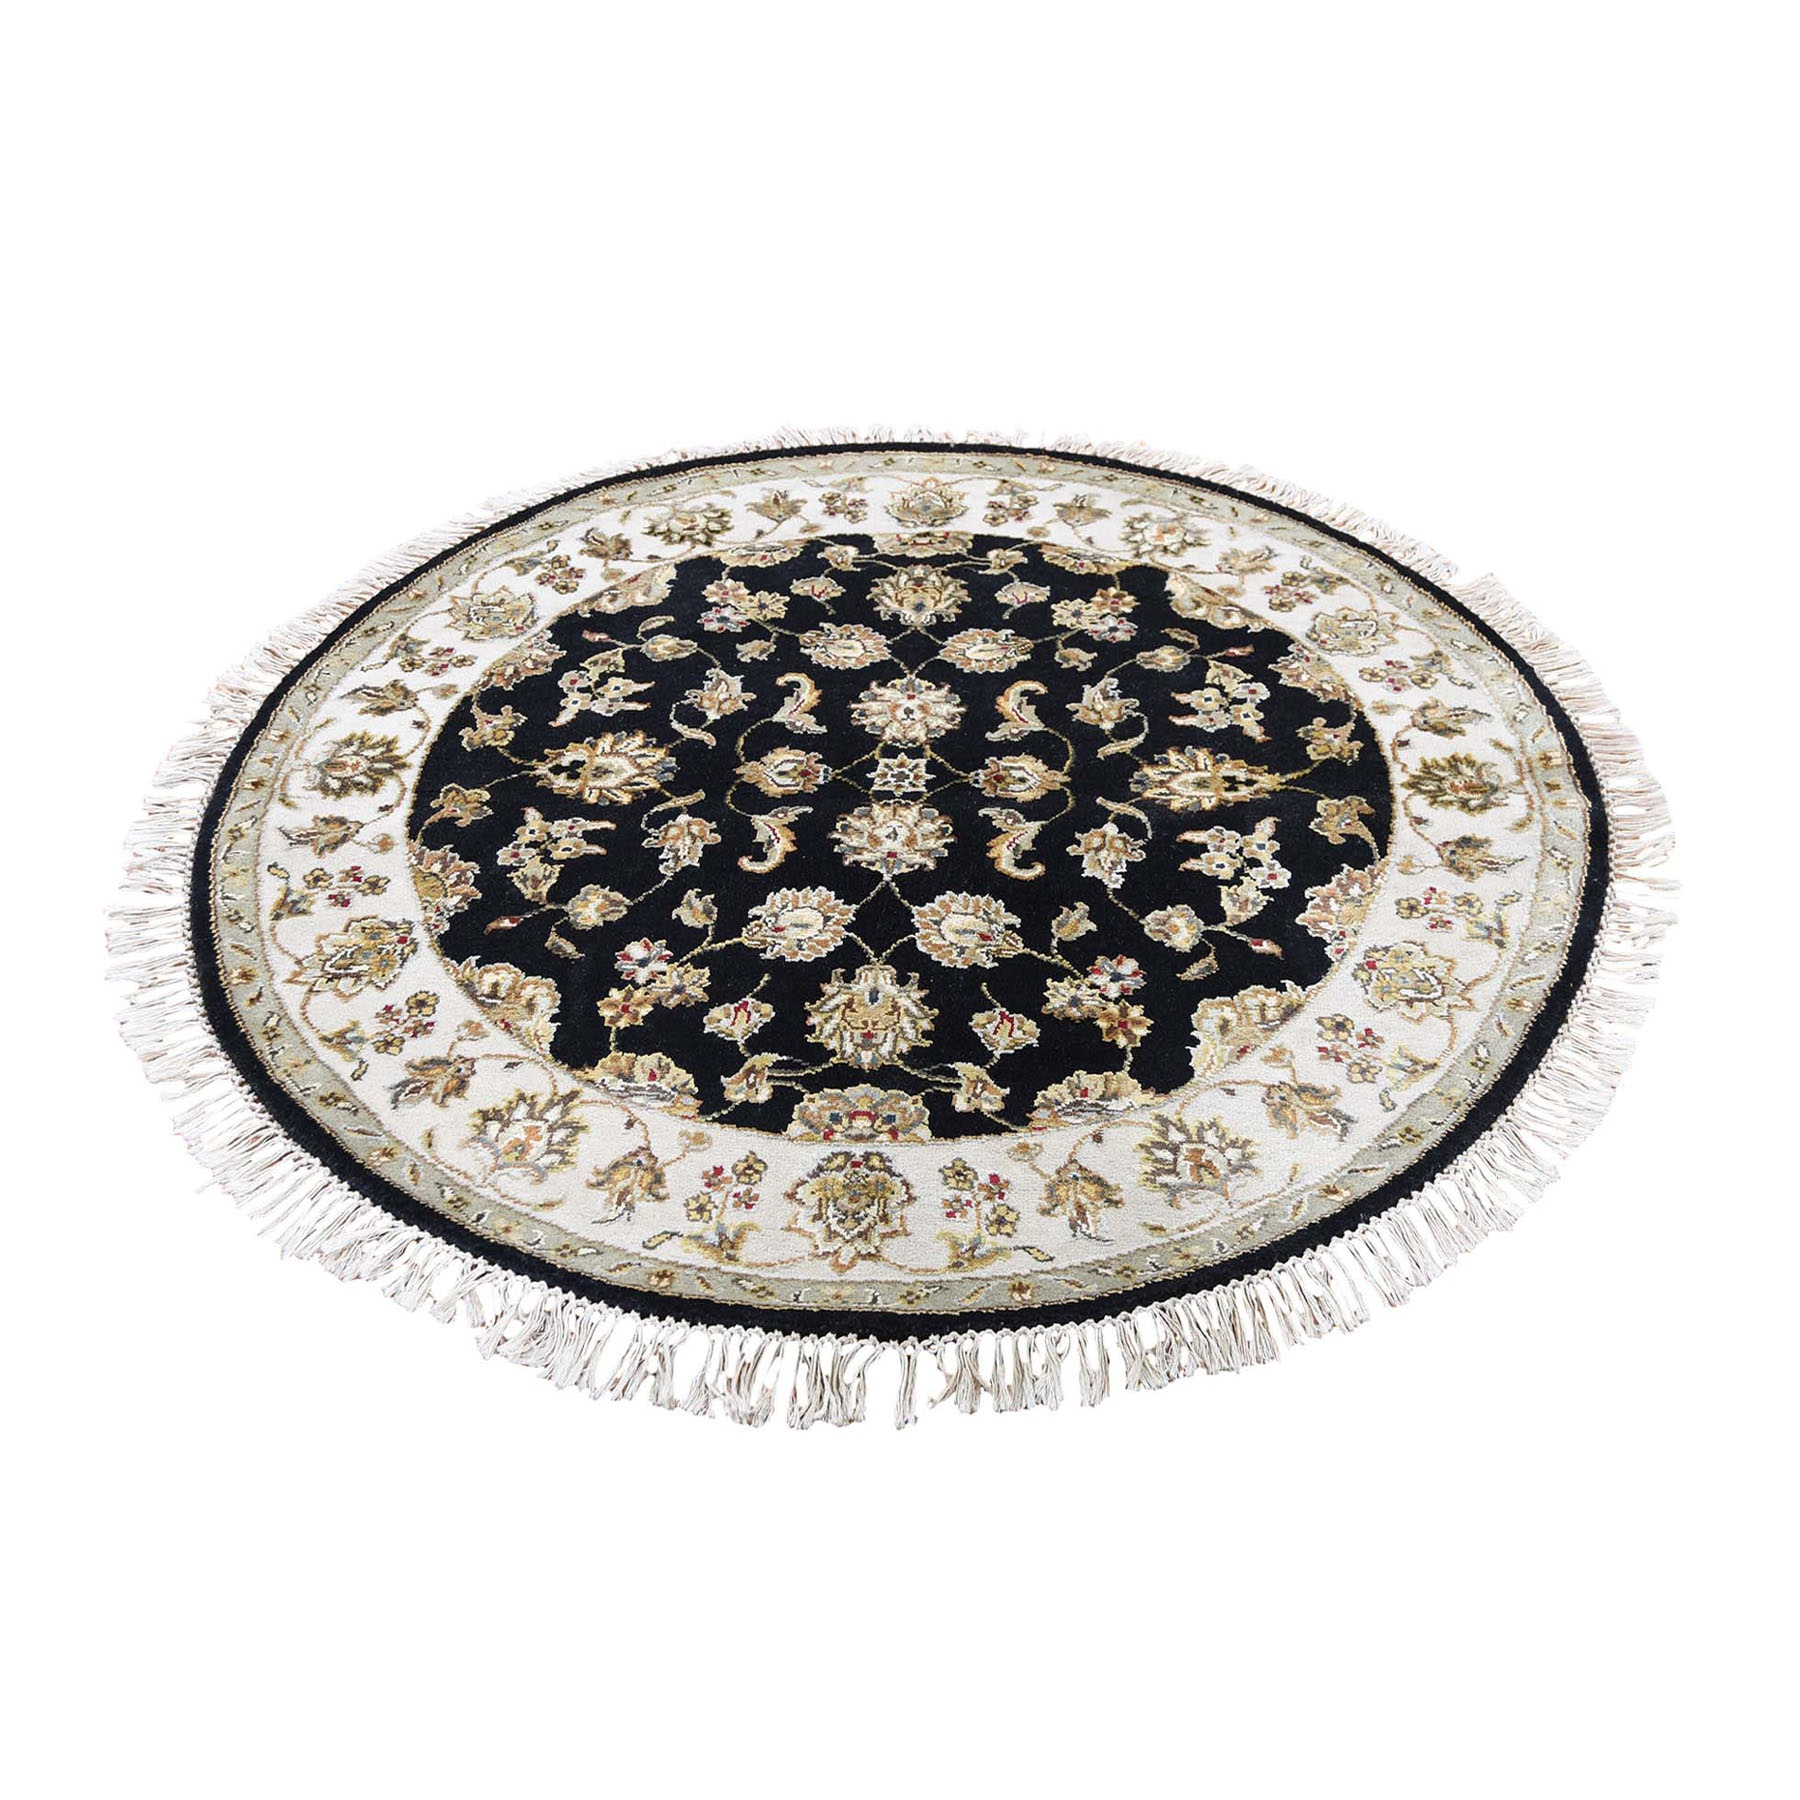 Pahlavi Collection Hand Knotted Black Rug No: 0196120